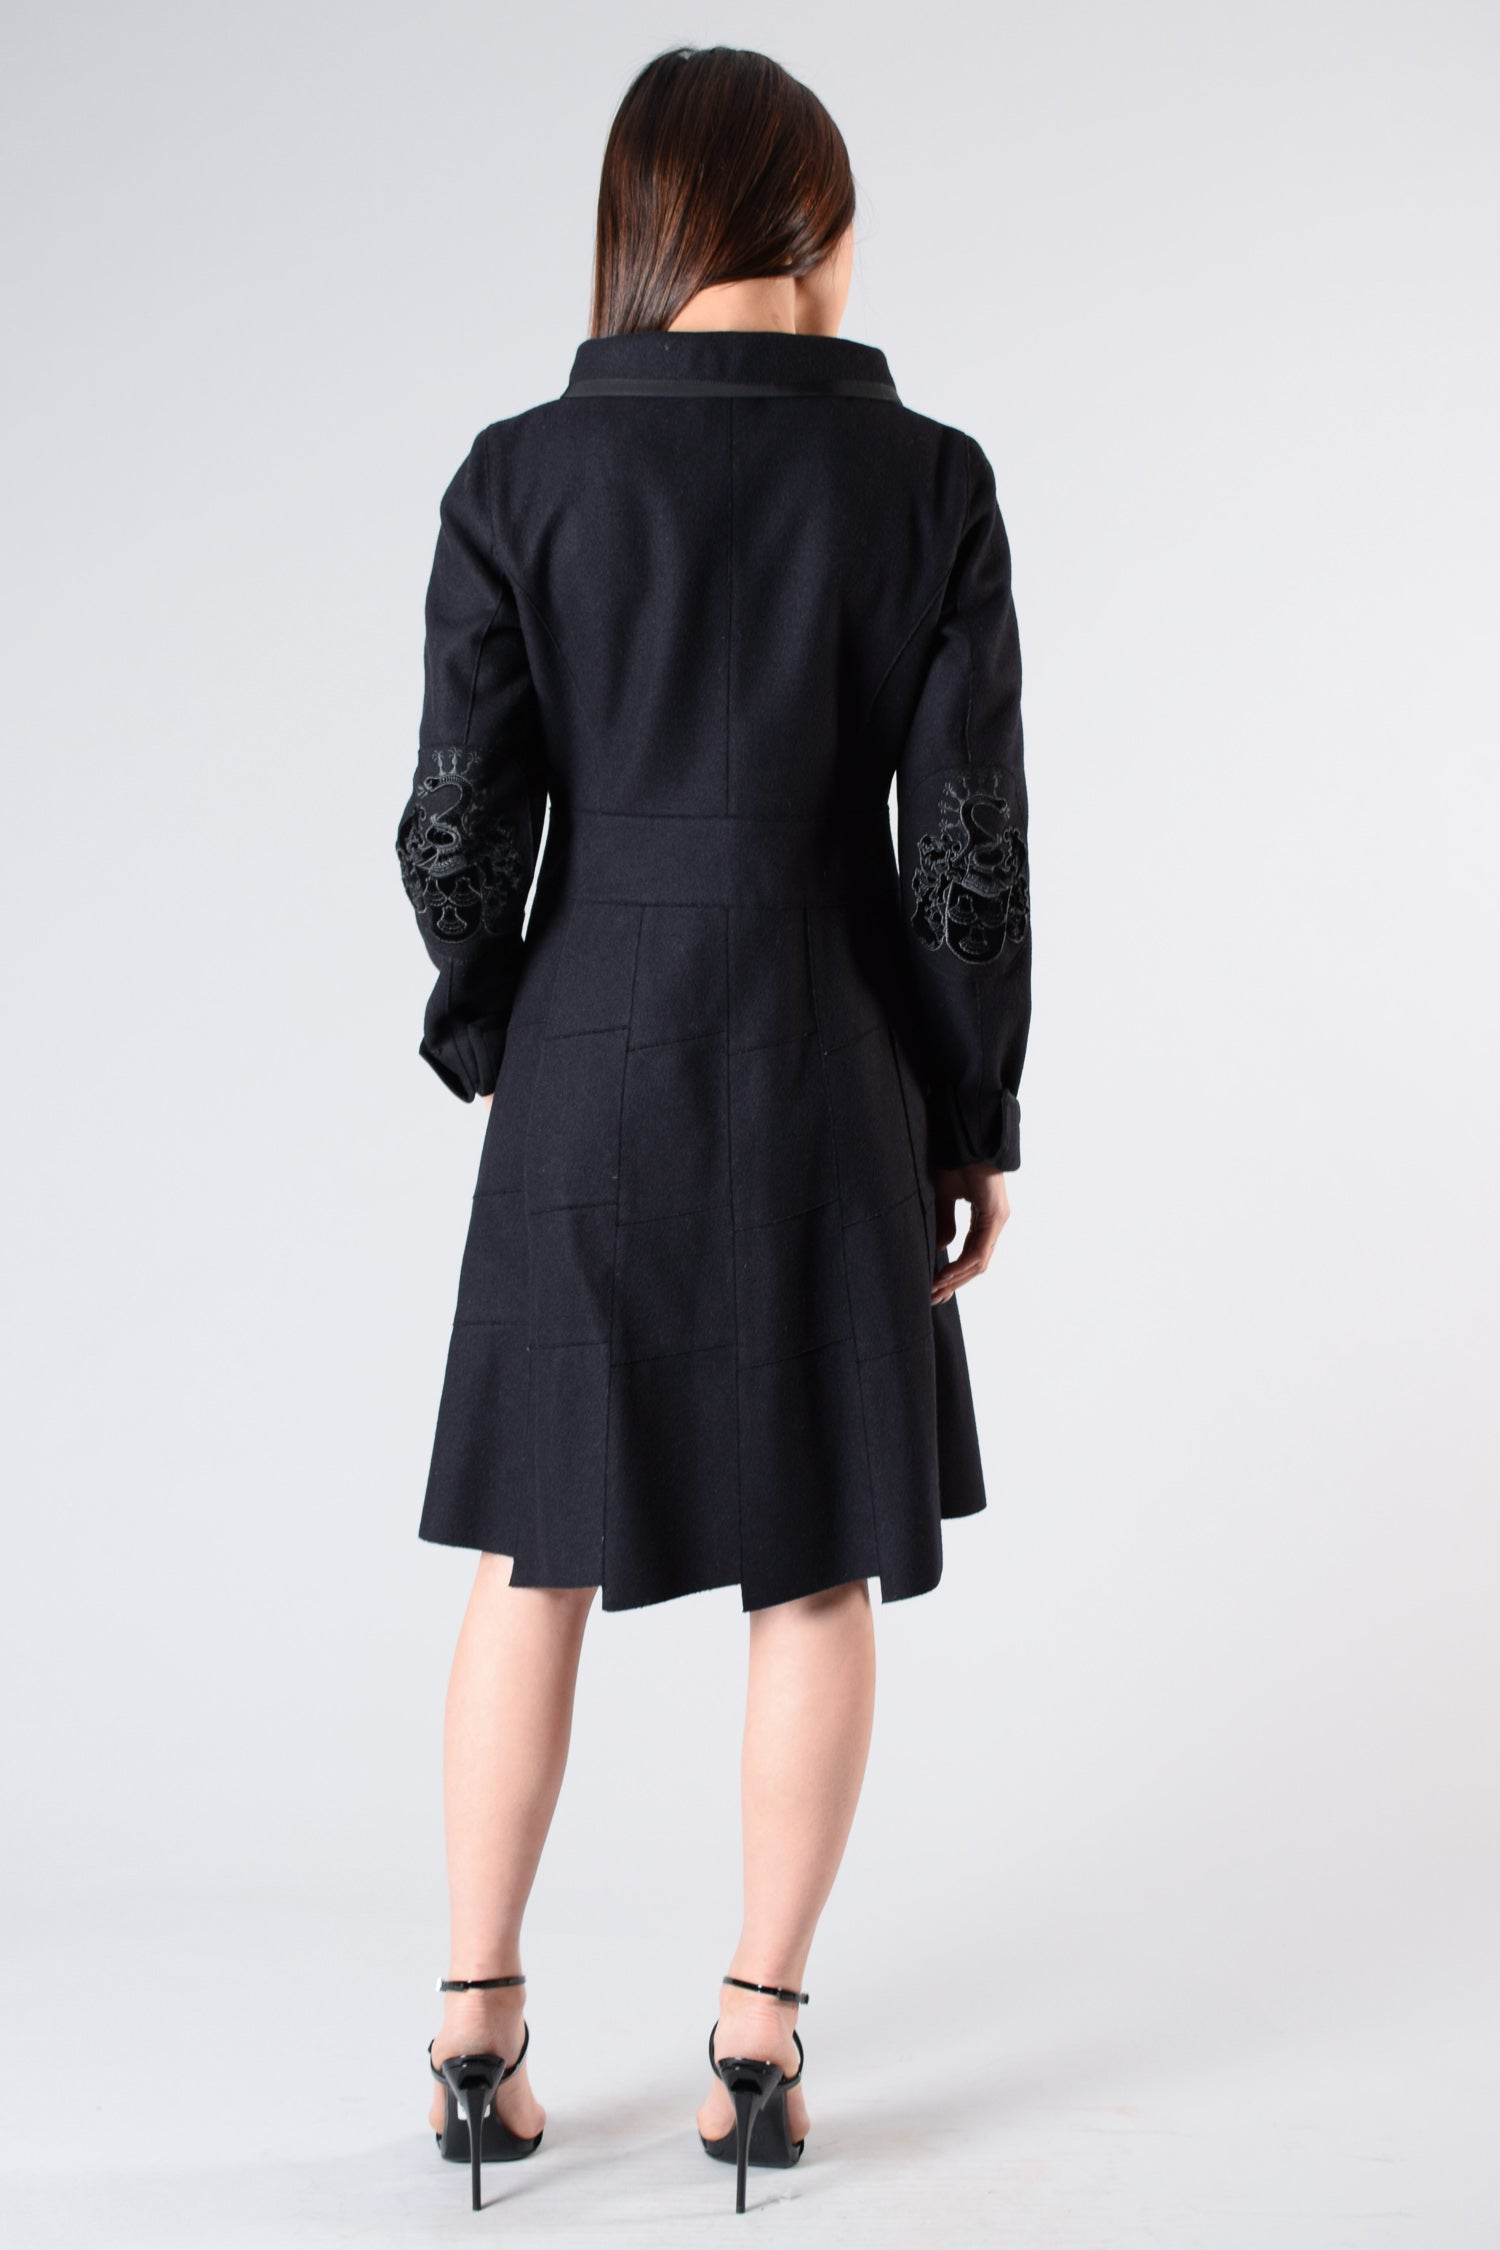 Miu Miu Wool Coat w/ Embellished Buttons & Velvet Detail on Elbows Size 40